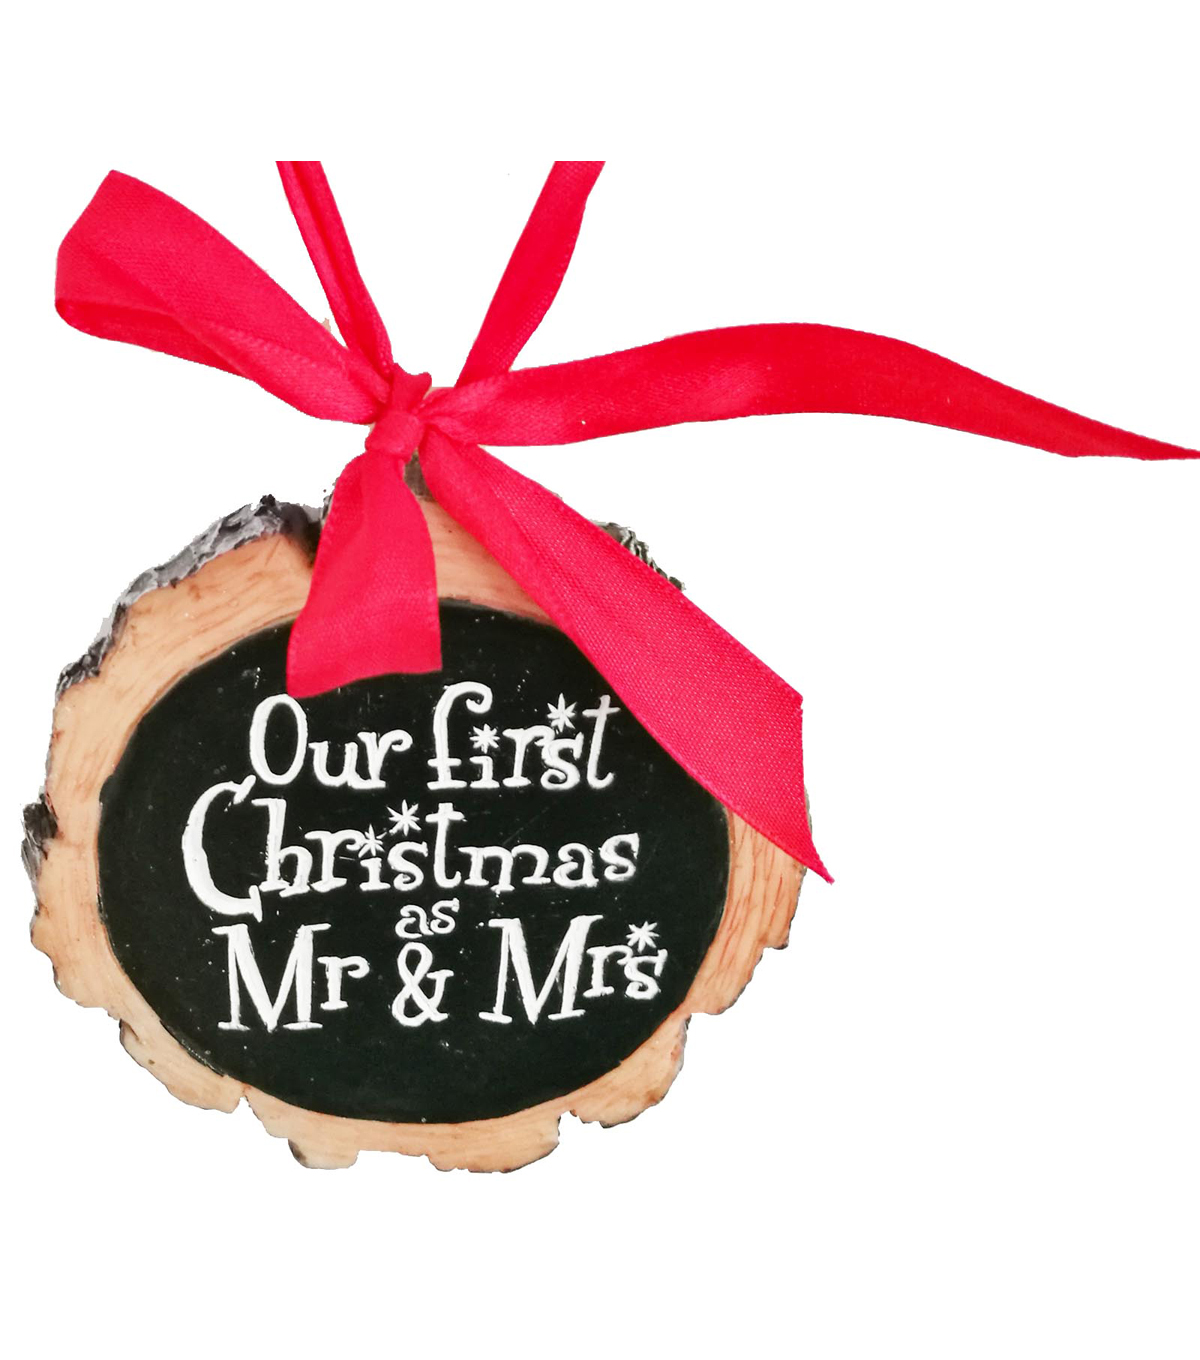 Maker\u0027s Holiday Ornament-Our First Christmas as Mr & Mrs